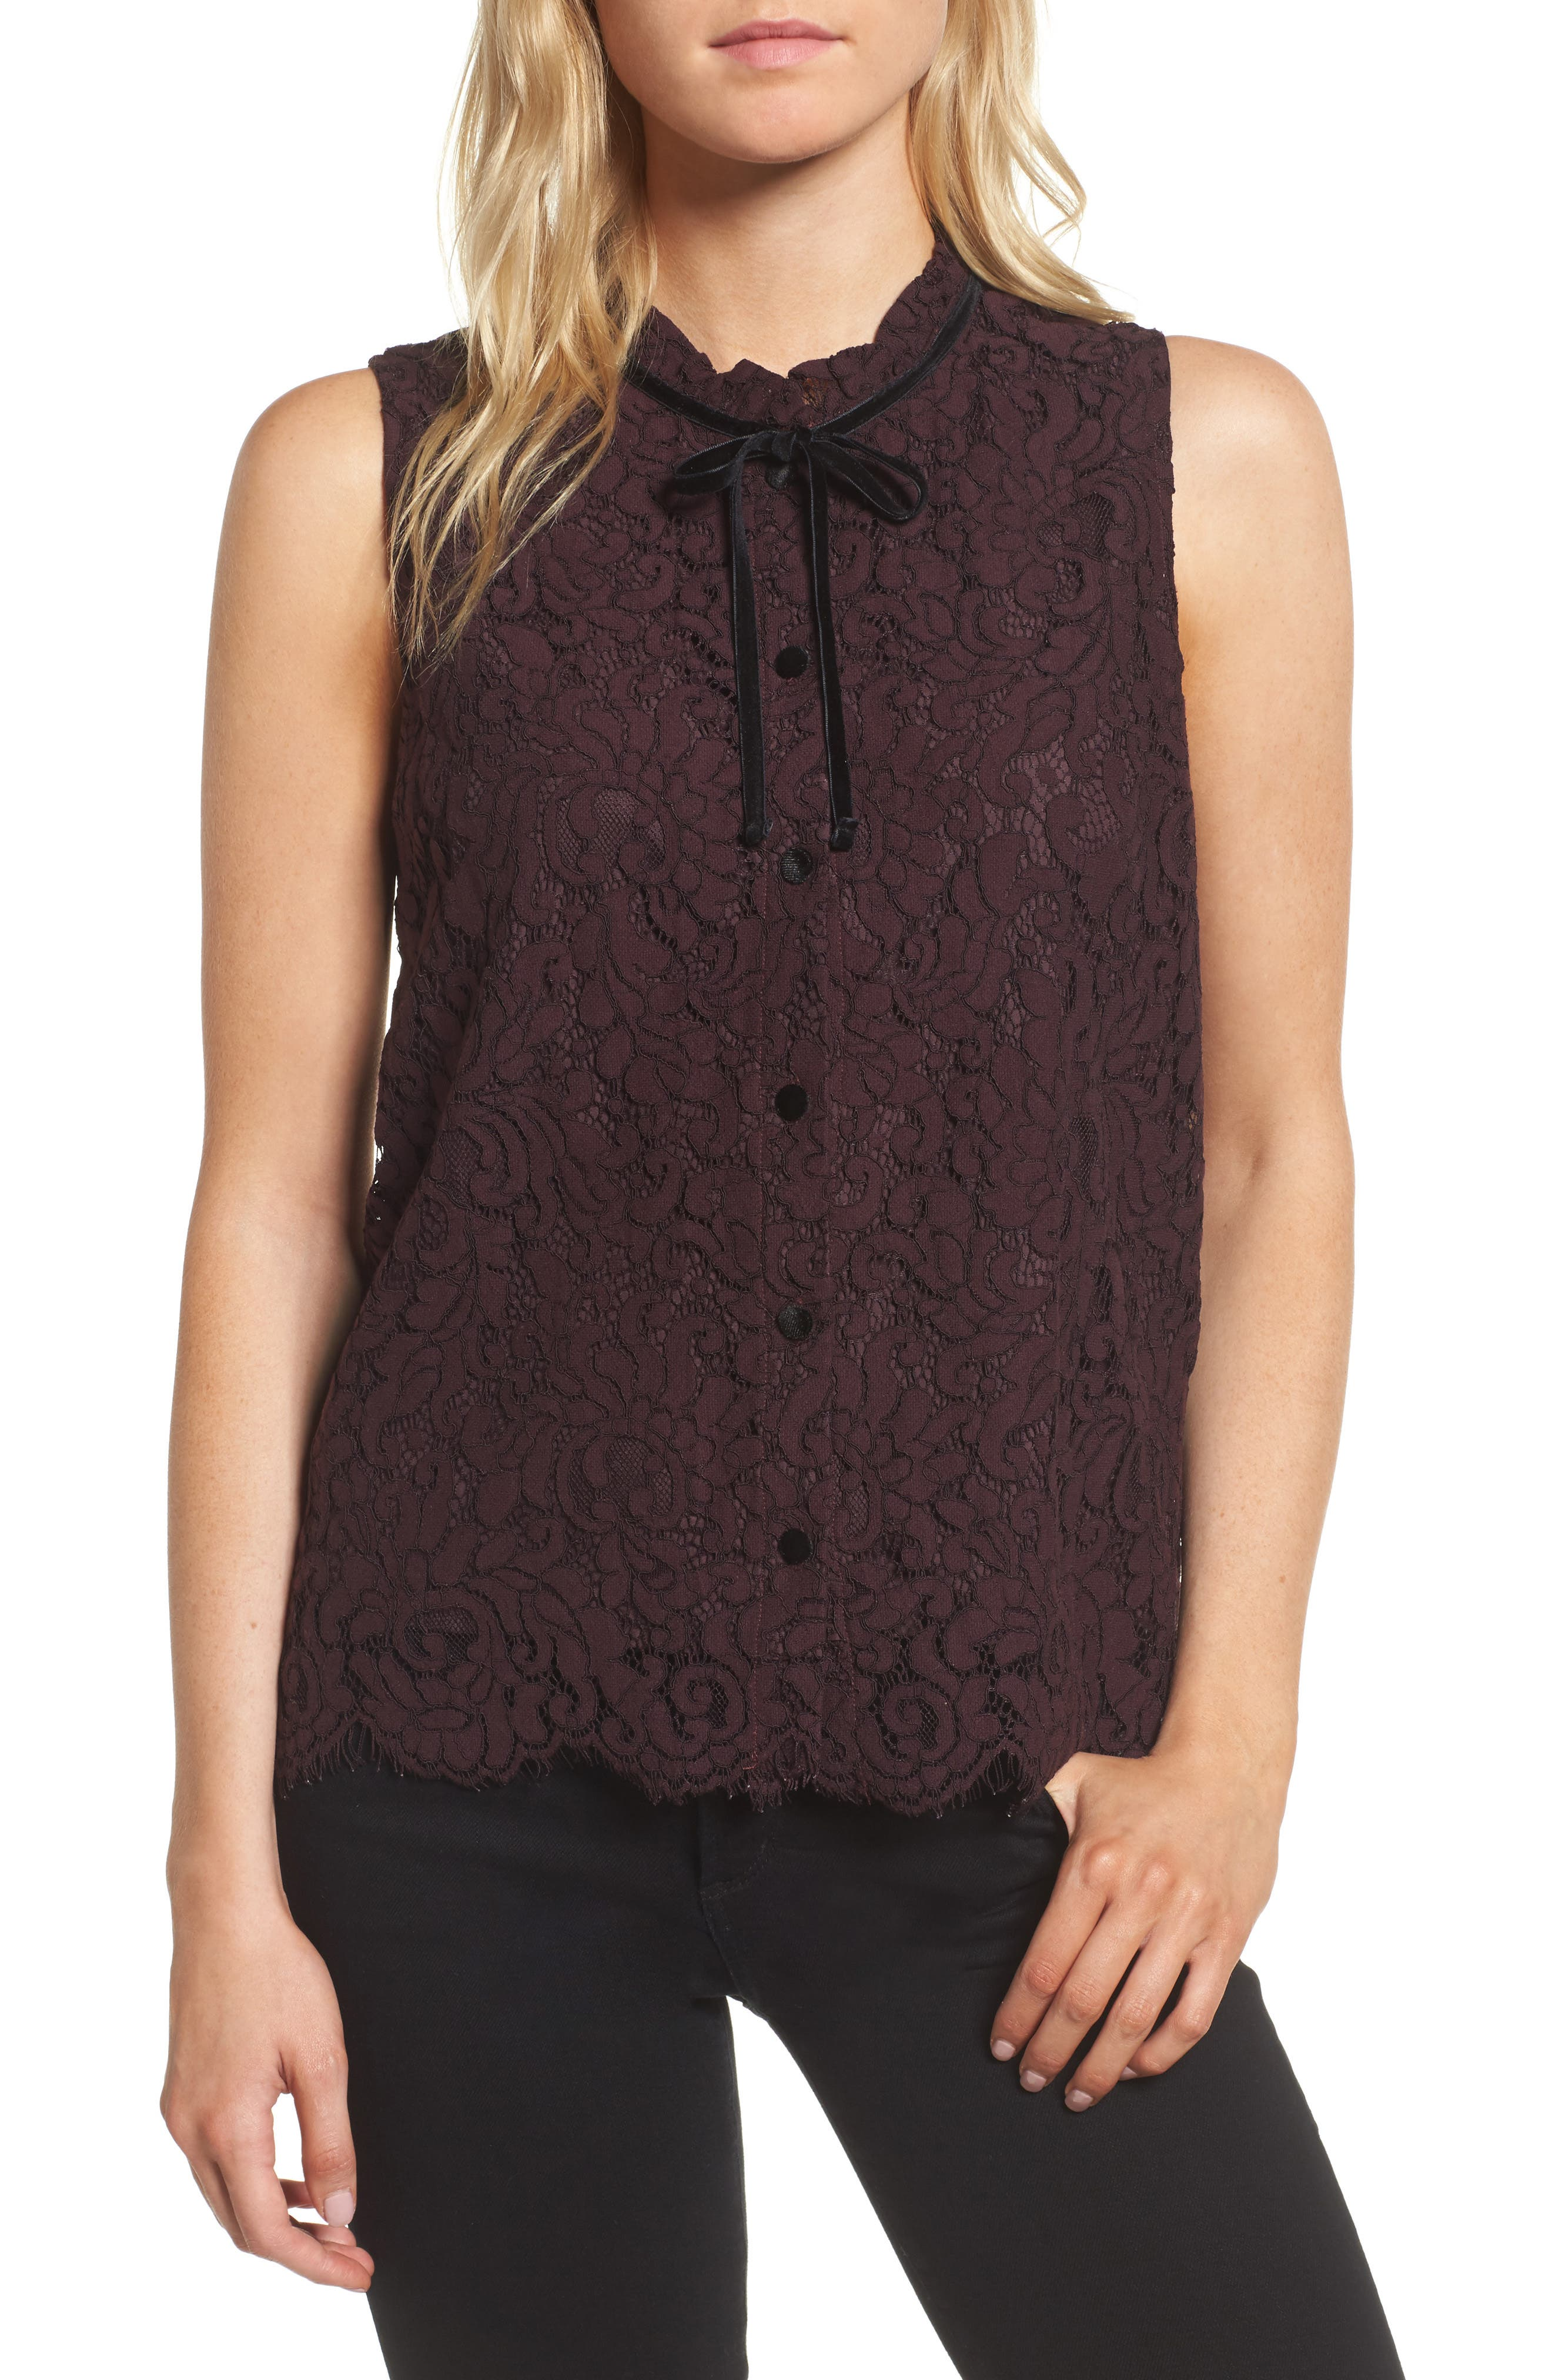 cupcakes and cashmere Isra Lace Top